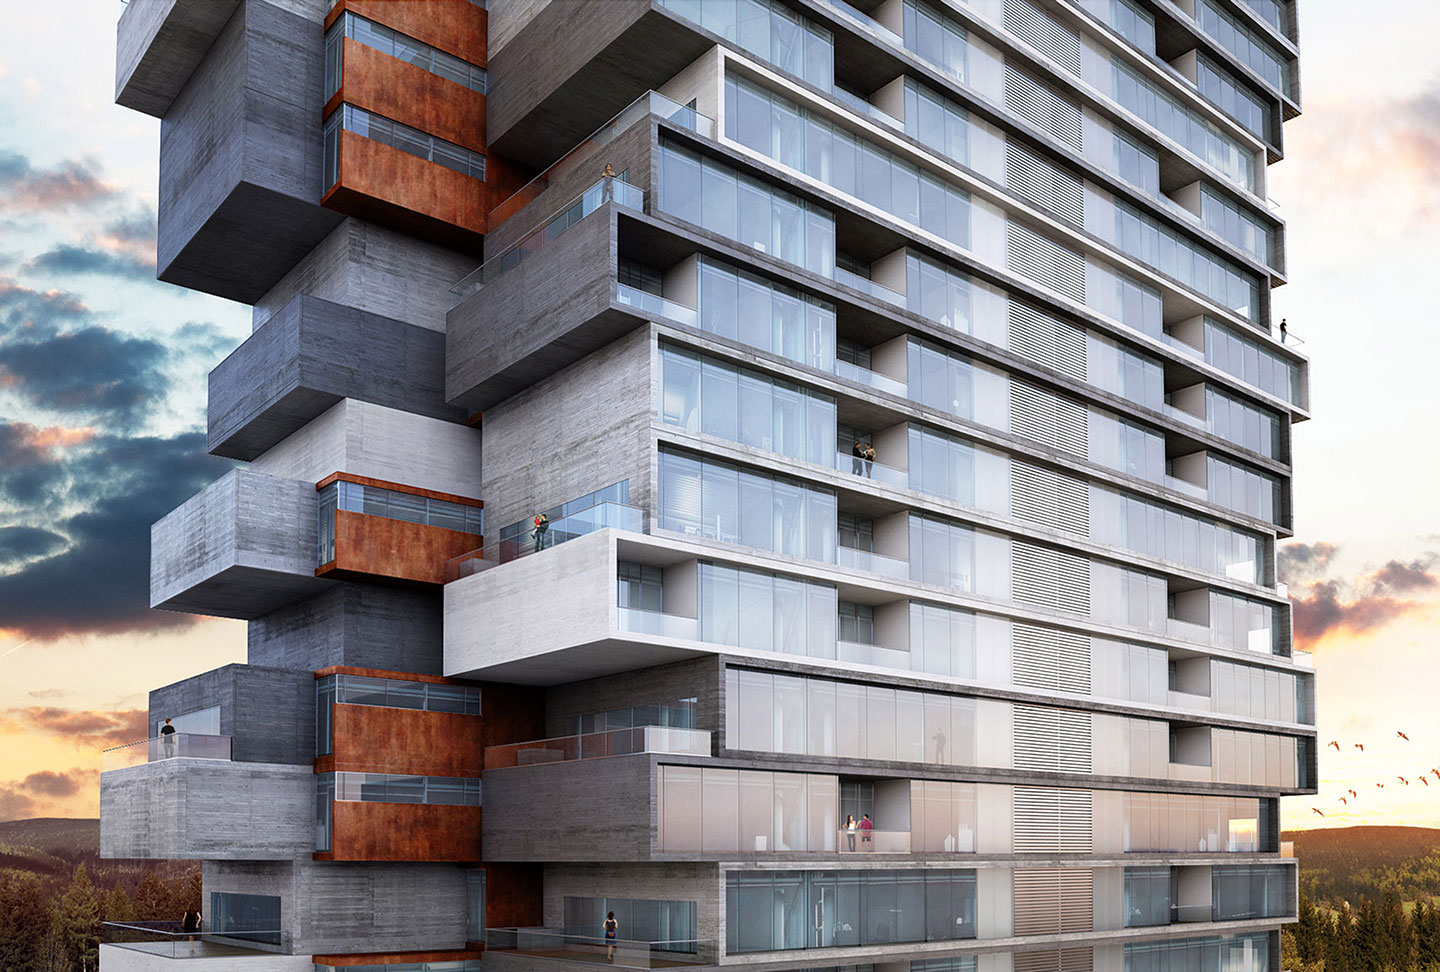 BEST HIGH-RISE ARCHITECTURE MEXICO